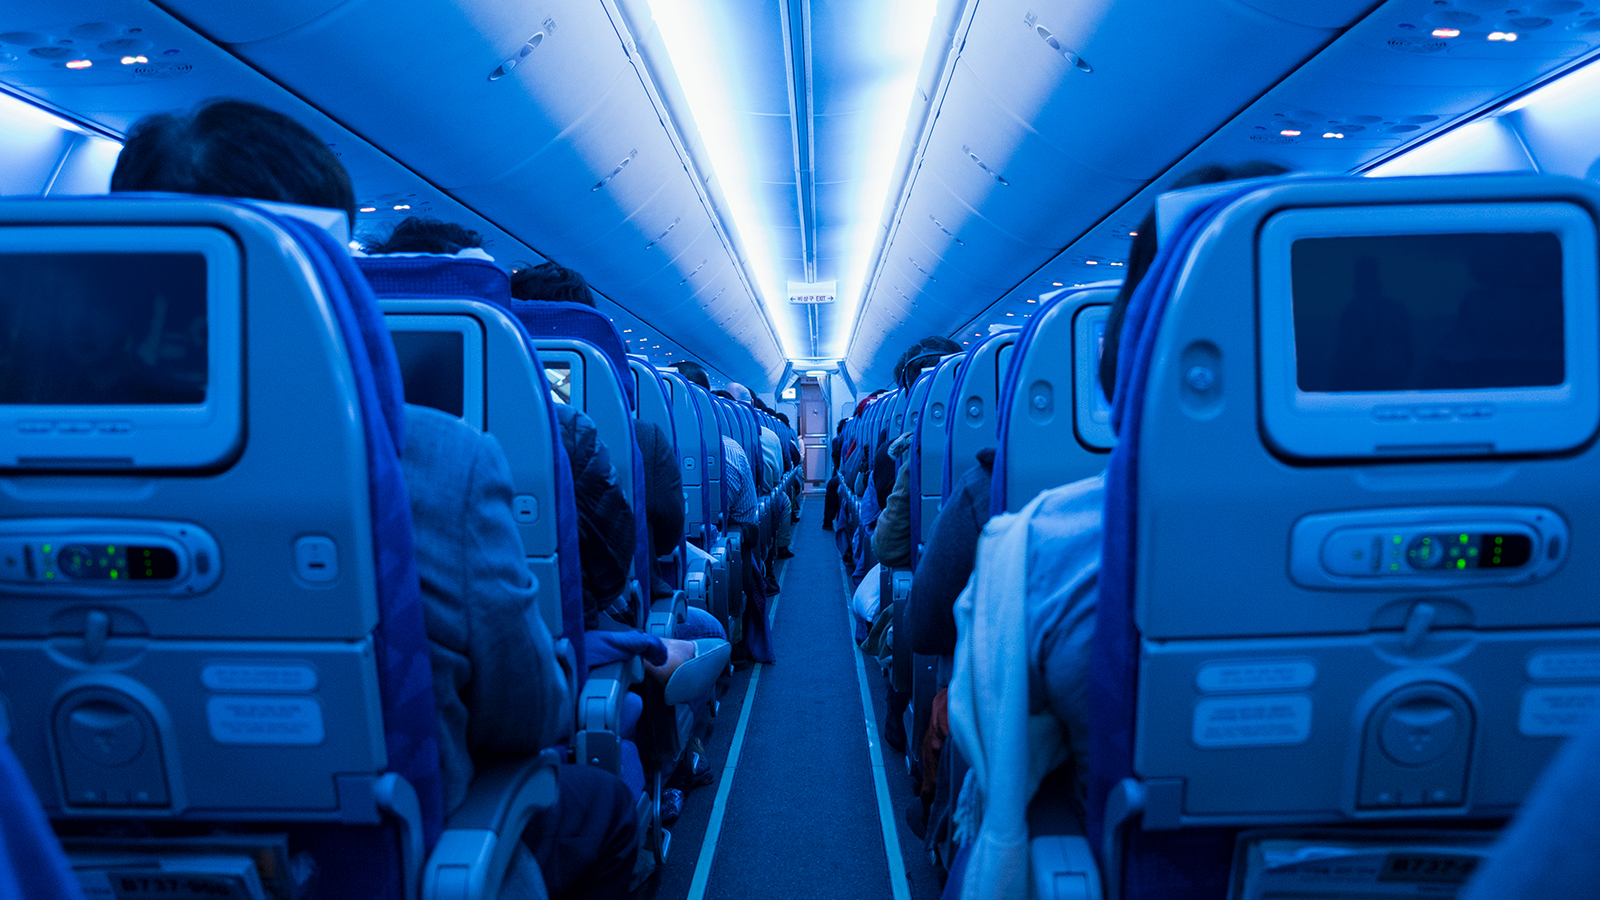 Is it safe to fly? Scientific experts walk us through the decision process